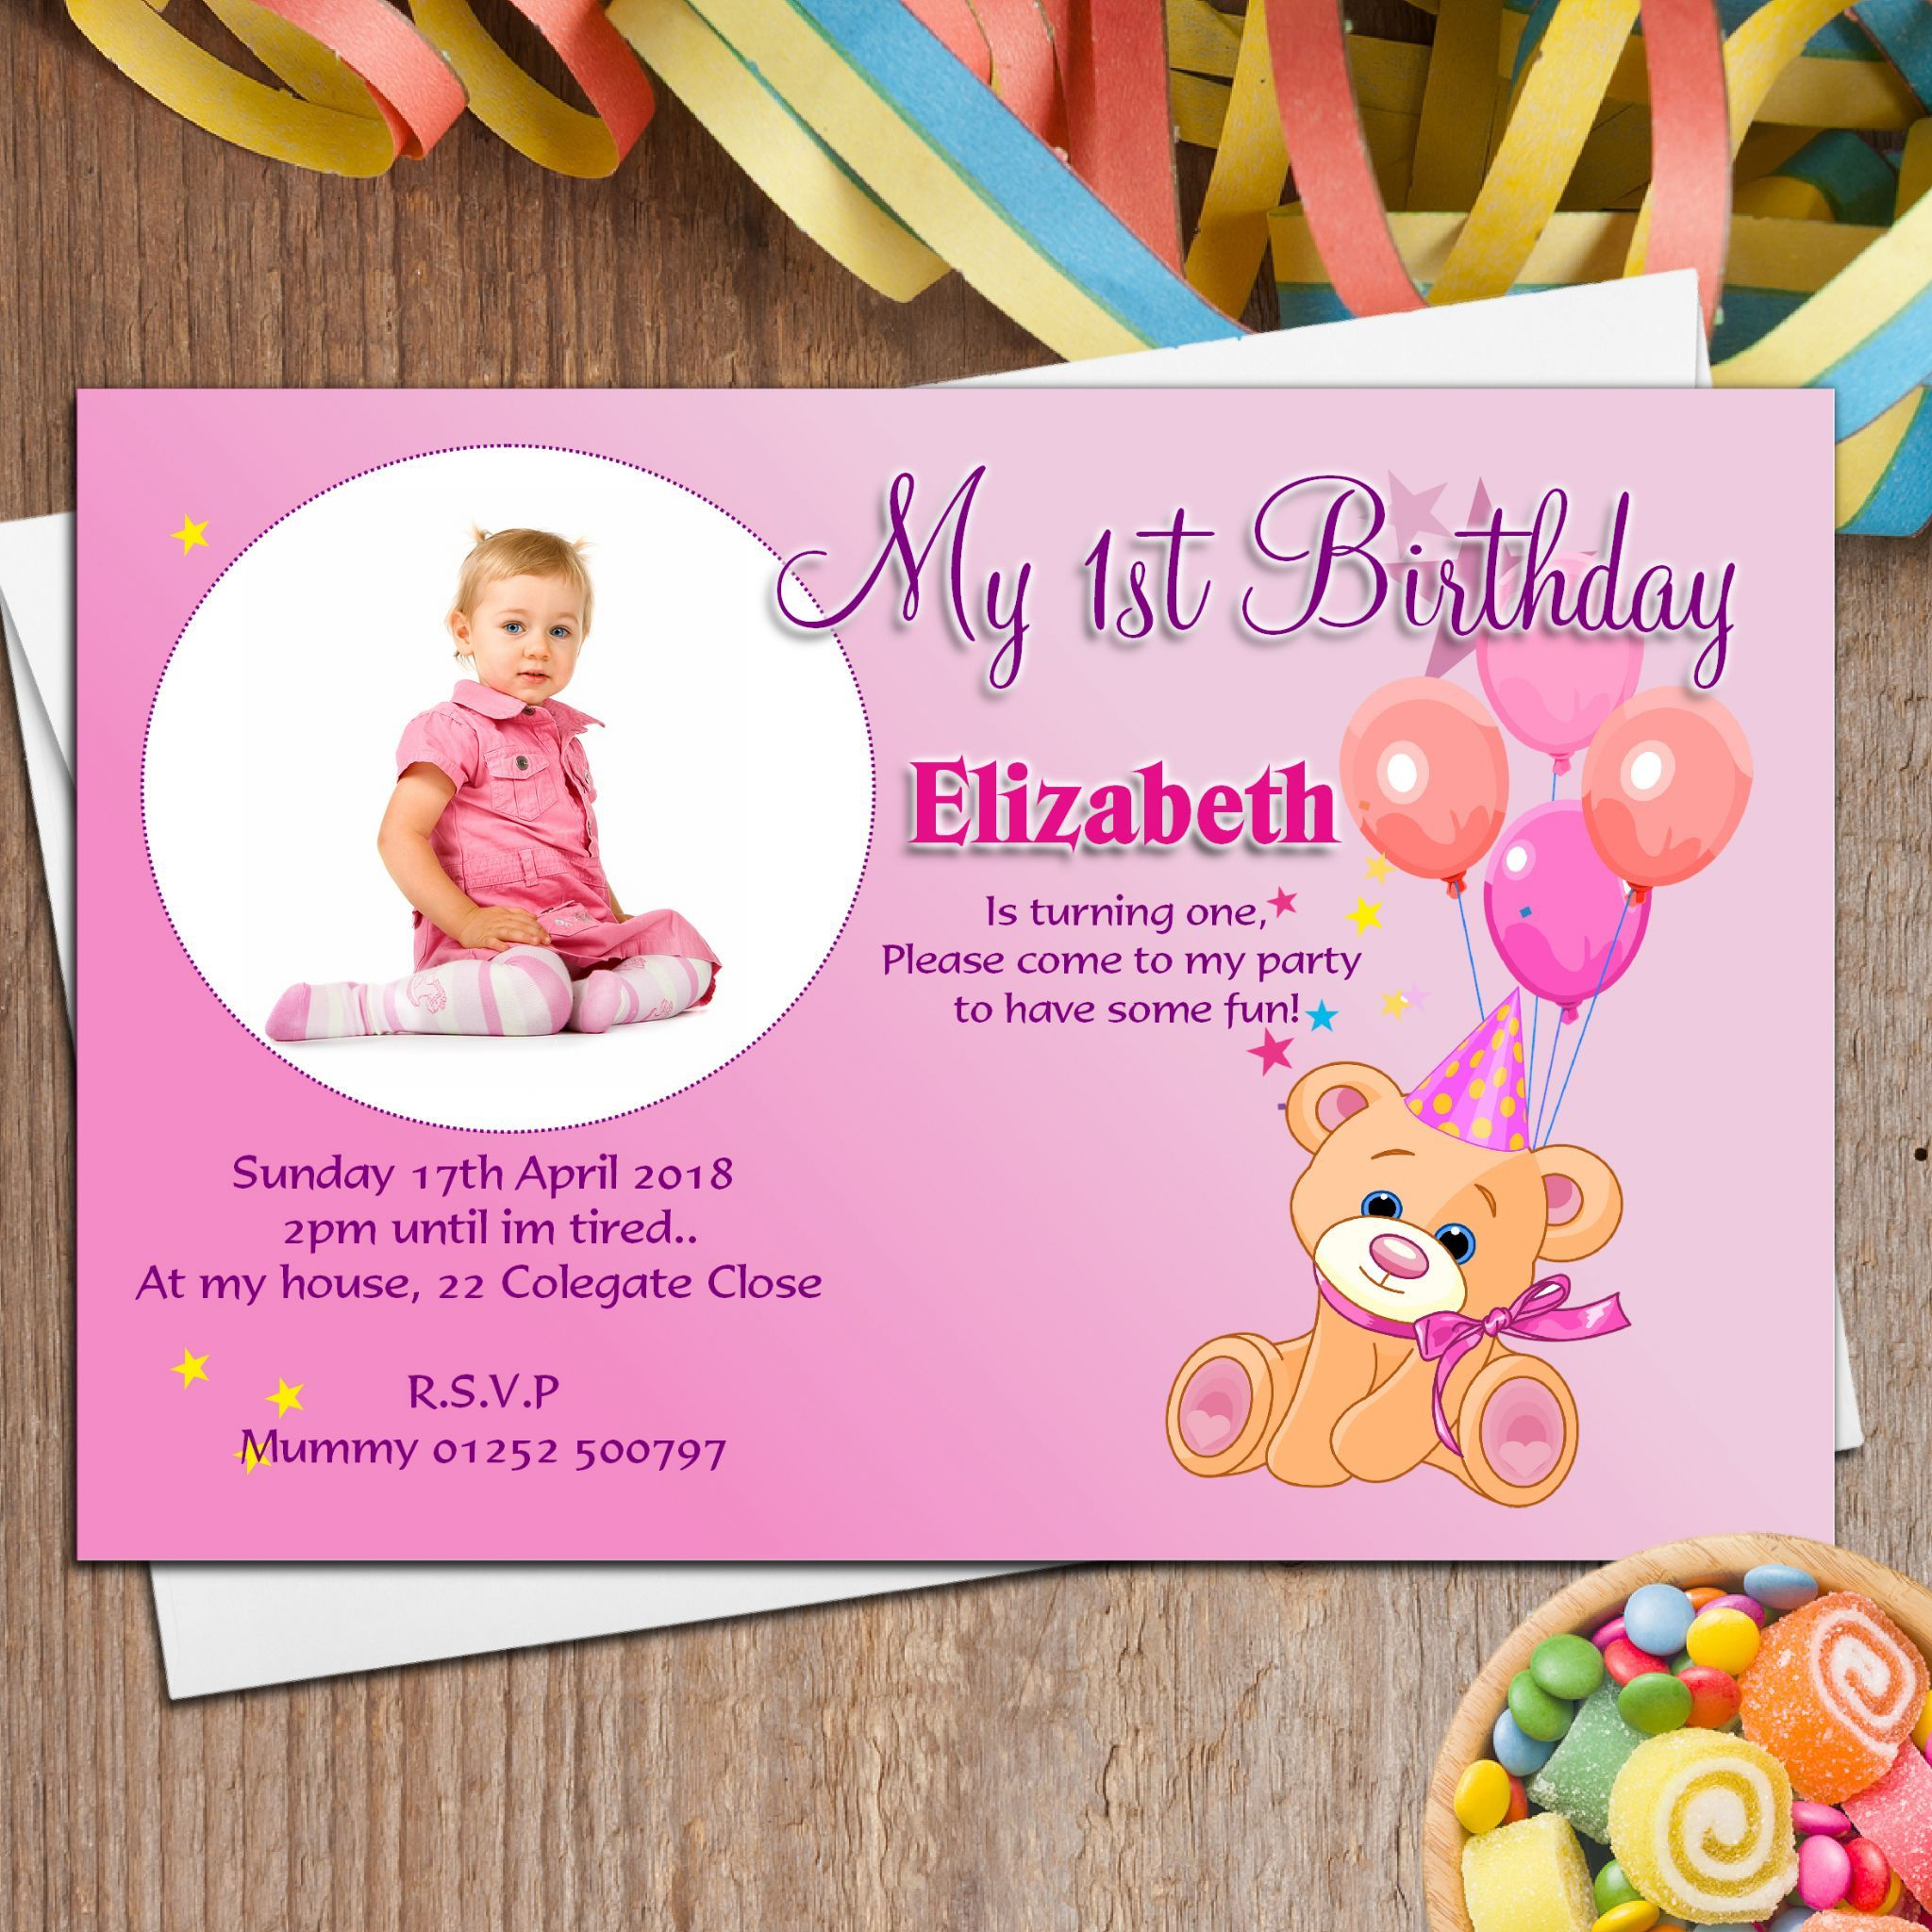 1st birthday invitation cards for baby boy in india dnyaneshwar 1st birthday invitation cards for baby boy in india stopboris